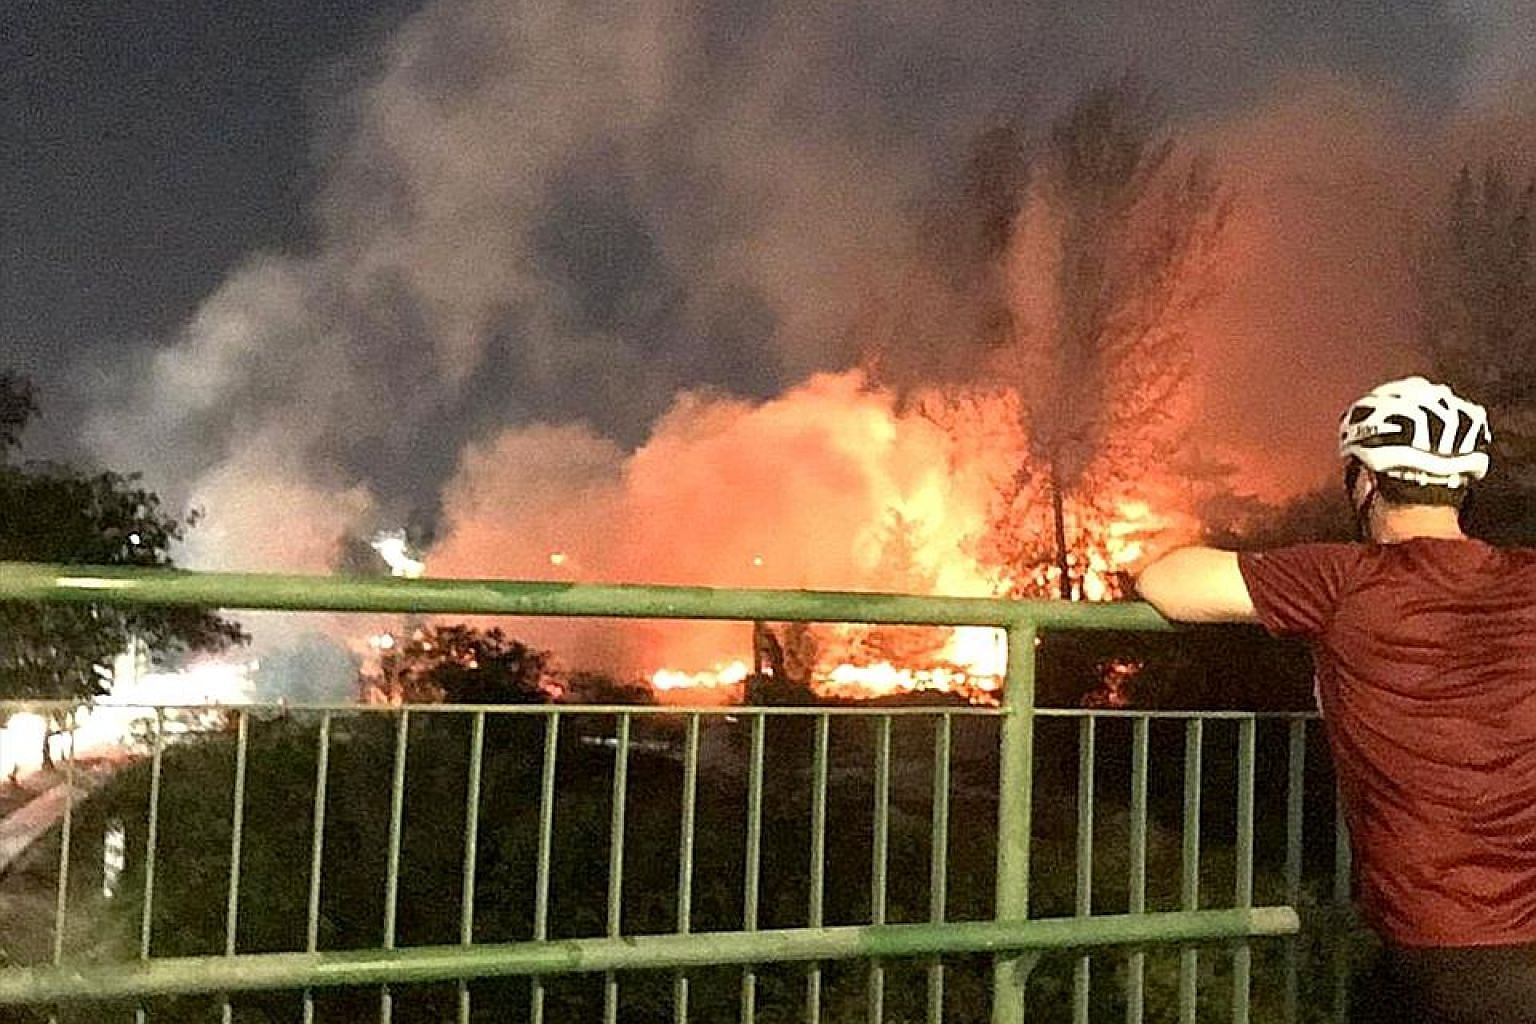 About 50 firefighters and 12 emergency vehicles were deployed to fight the fire, which was brought under control at 10.30pm.